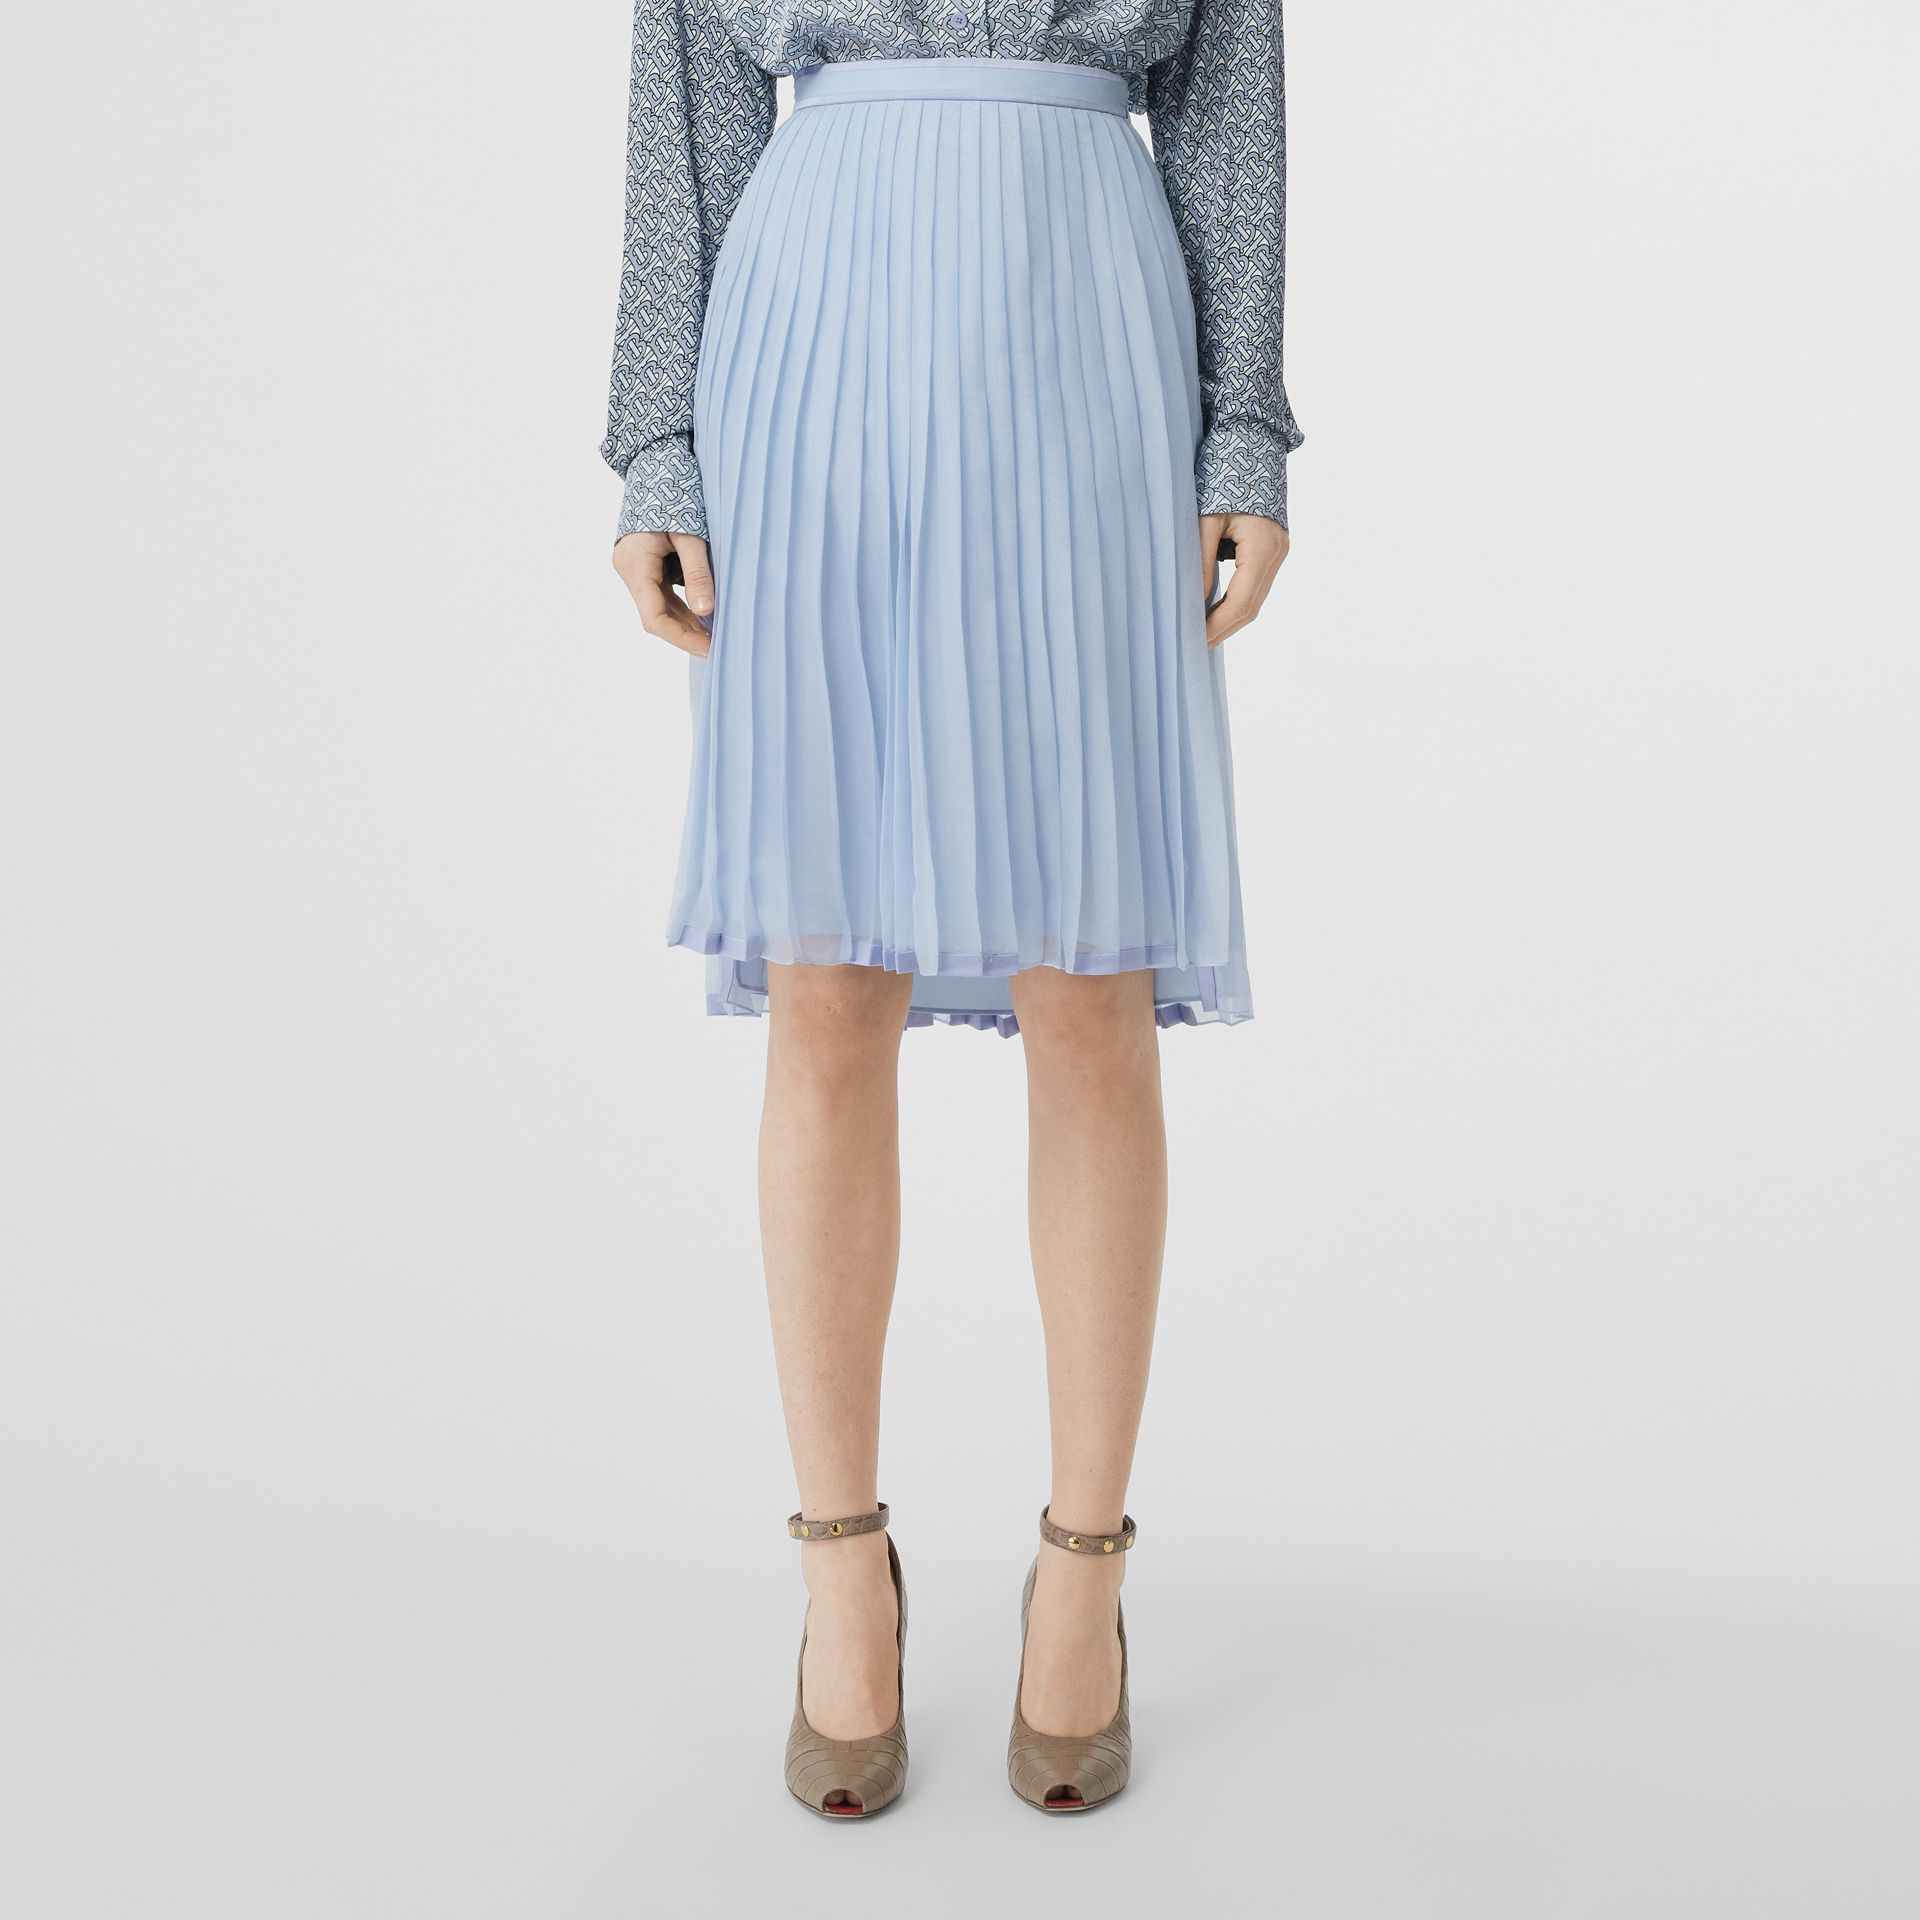 Contrast Trim Pleated Skirt in Pale Blue - Women | Burberry Singapore - gallery image 4